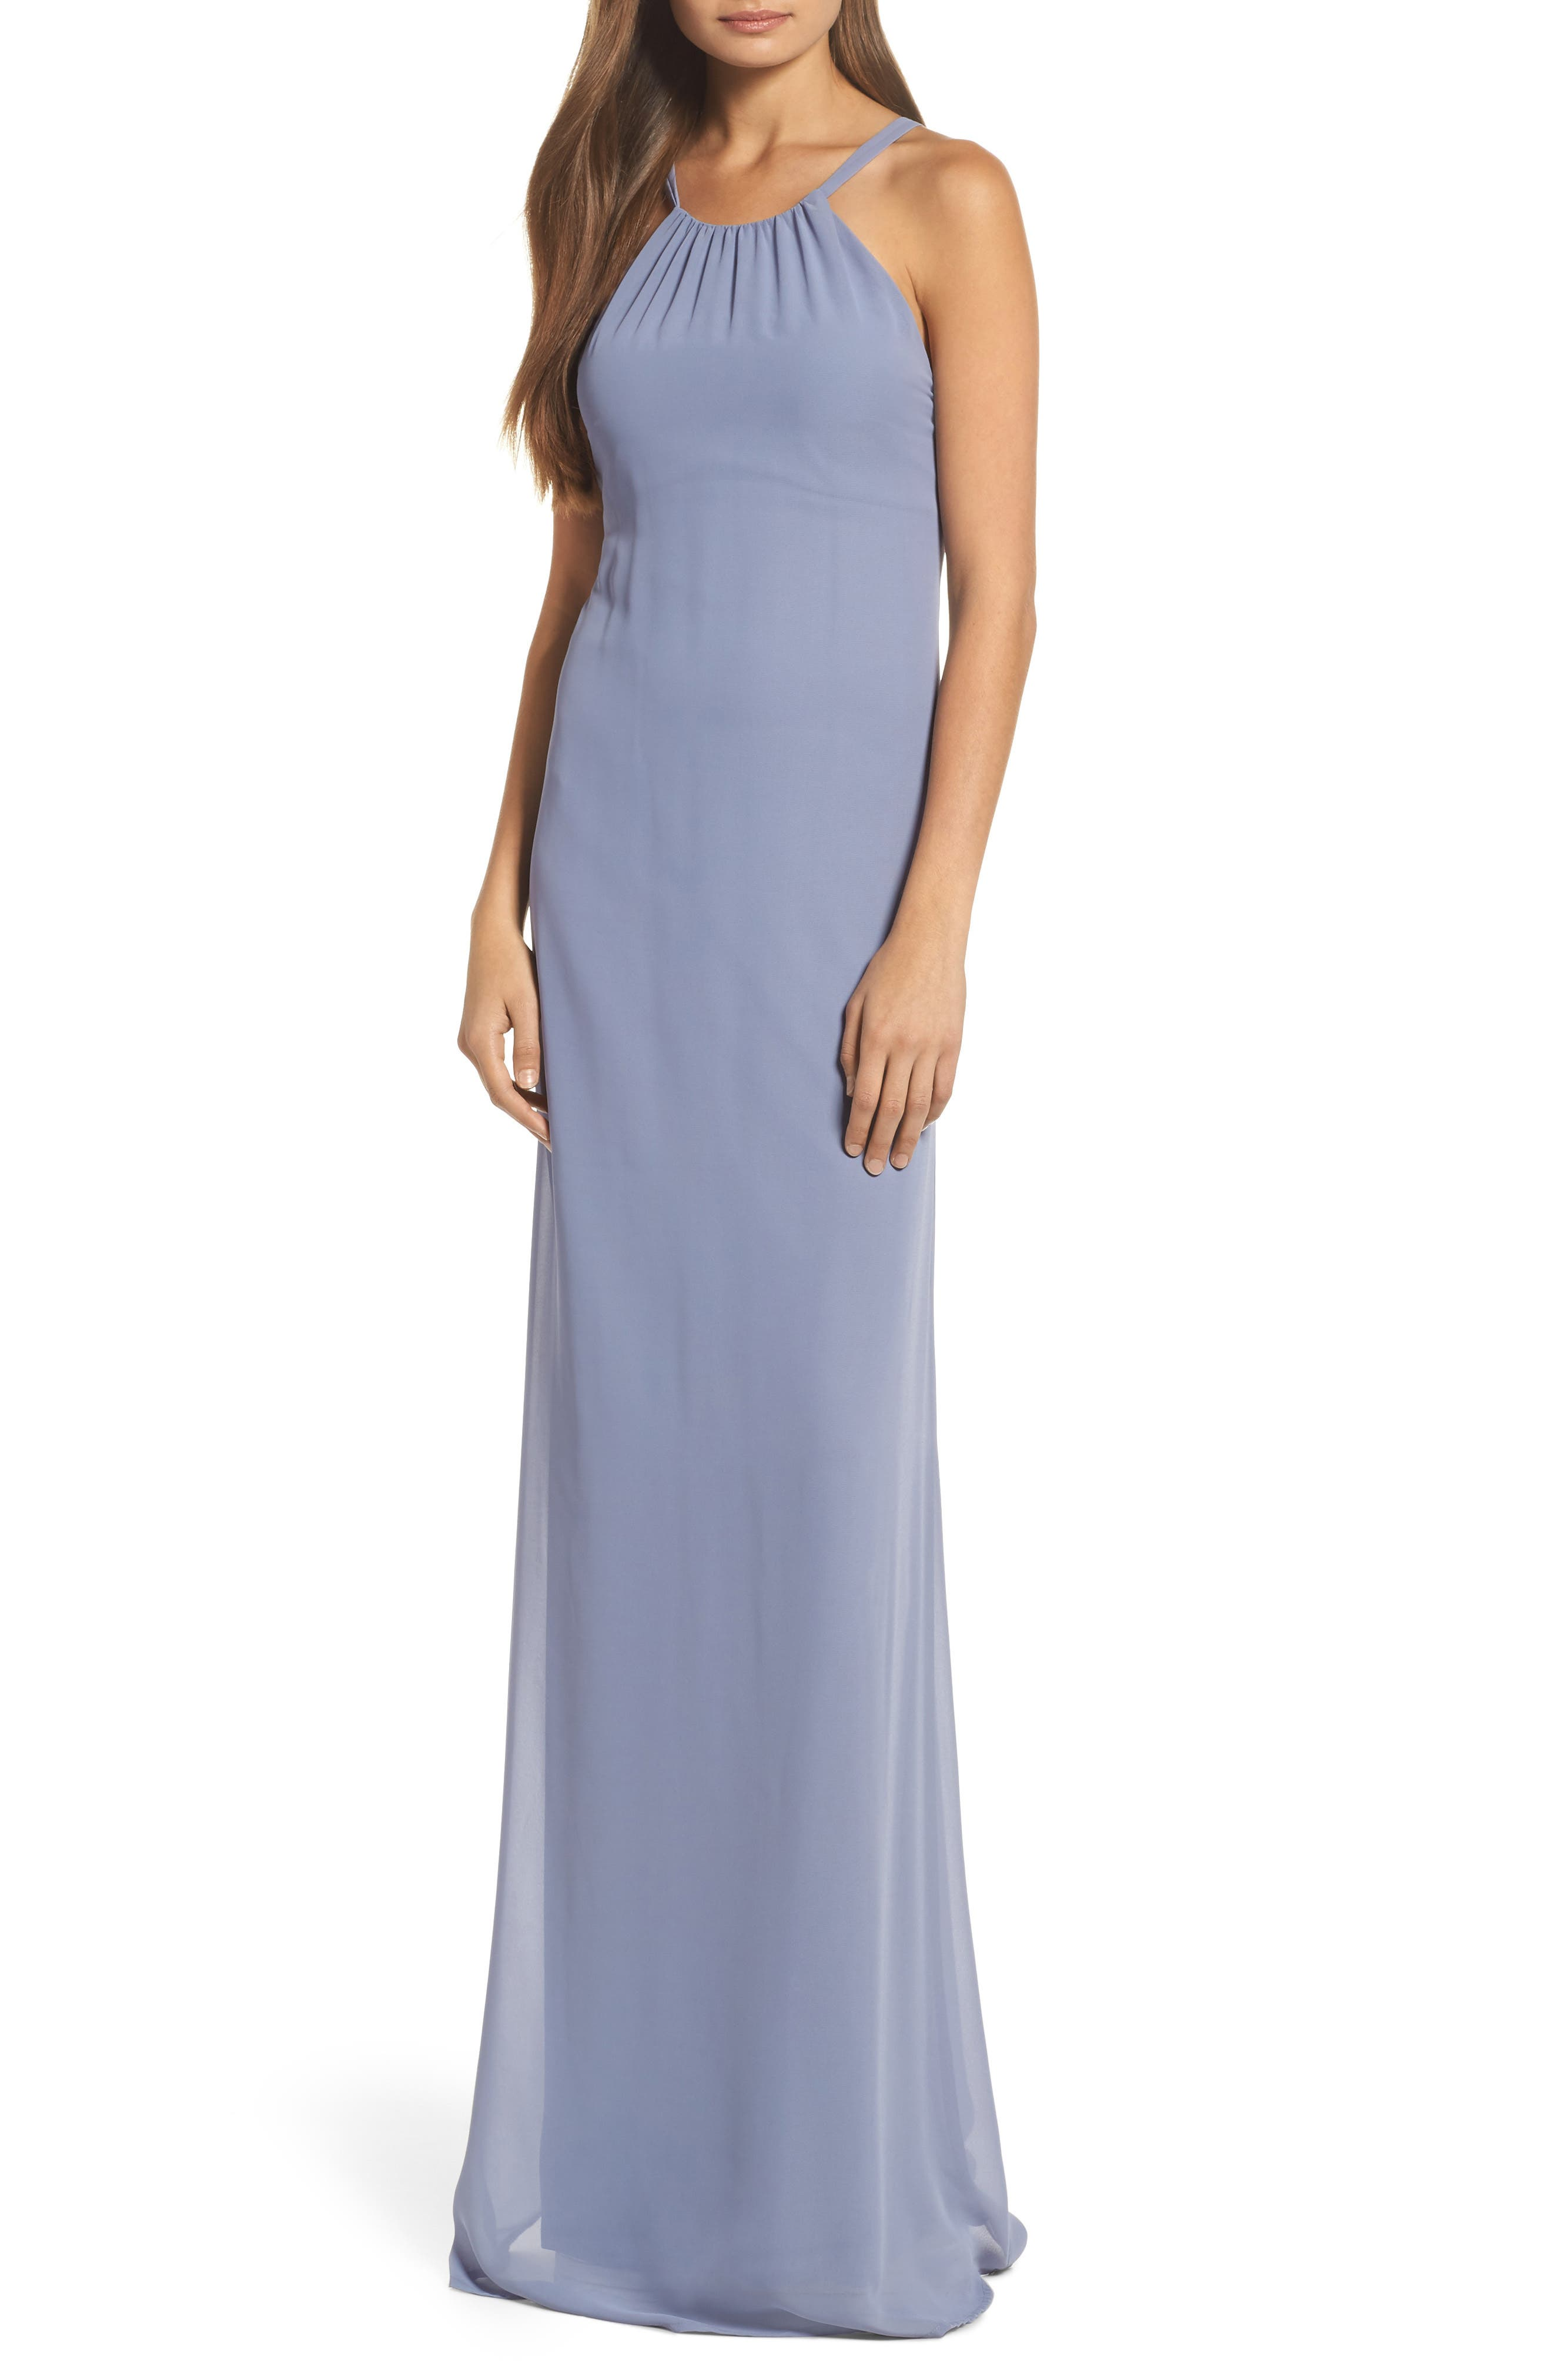 Strappy High Neck Chiffon Gown,                         Main,                         color, 020